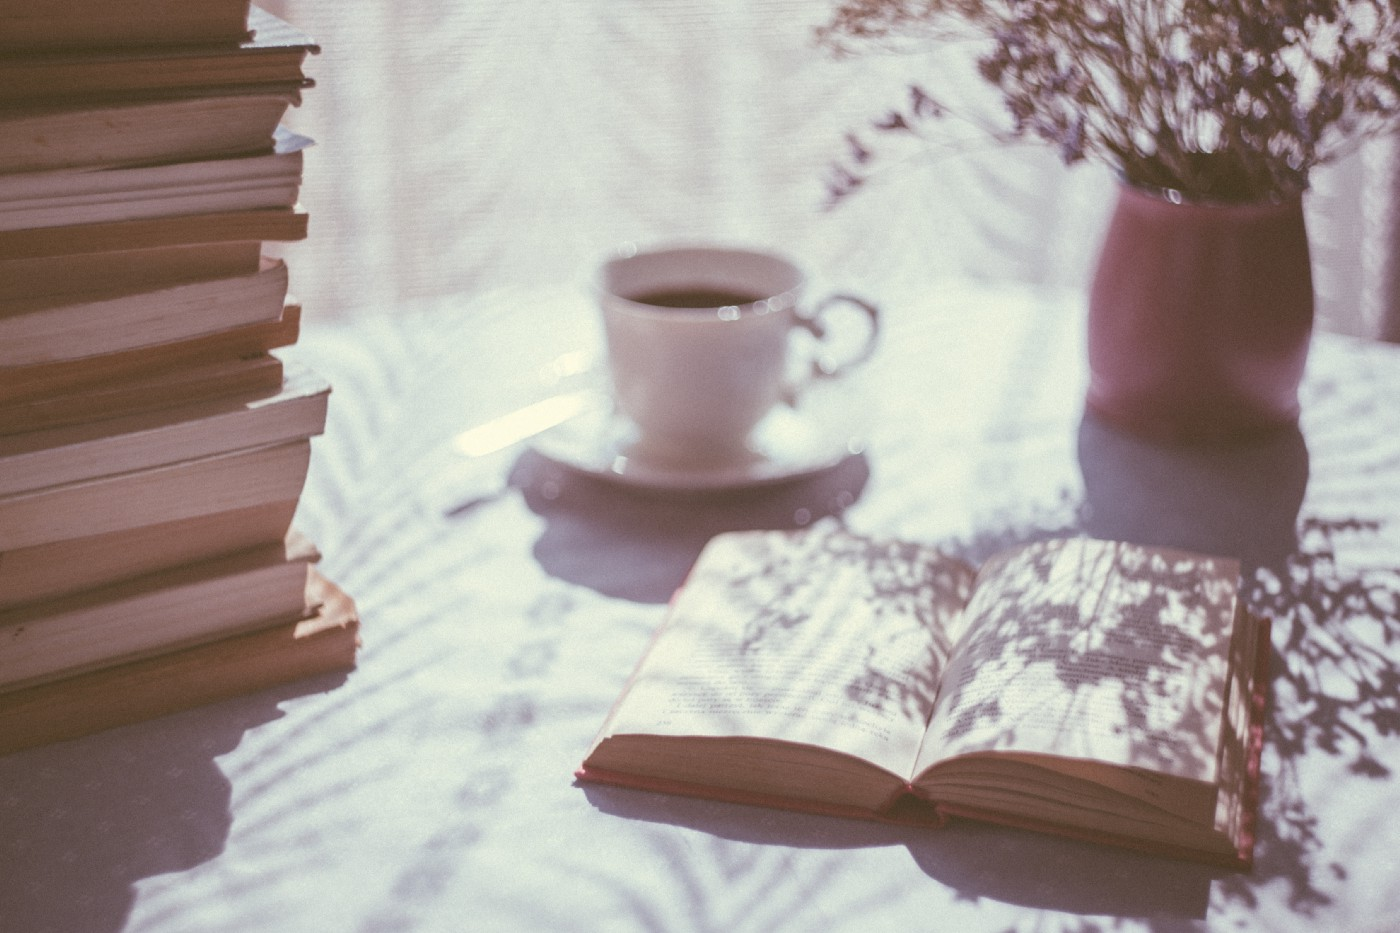 Rabail Bashir—list of books to read—books, a cup of tea, and a vas on a table